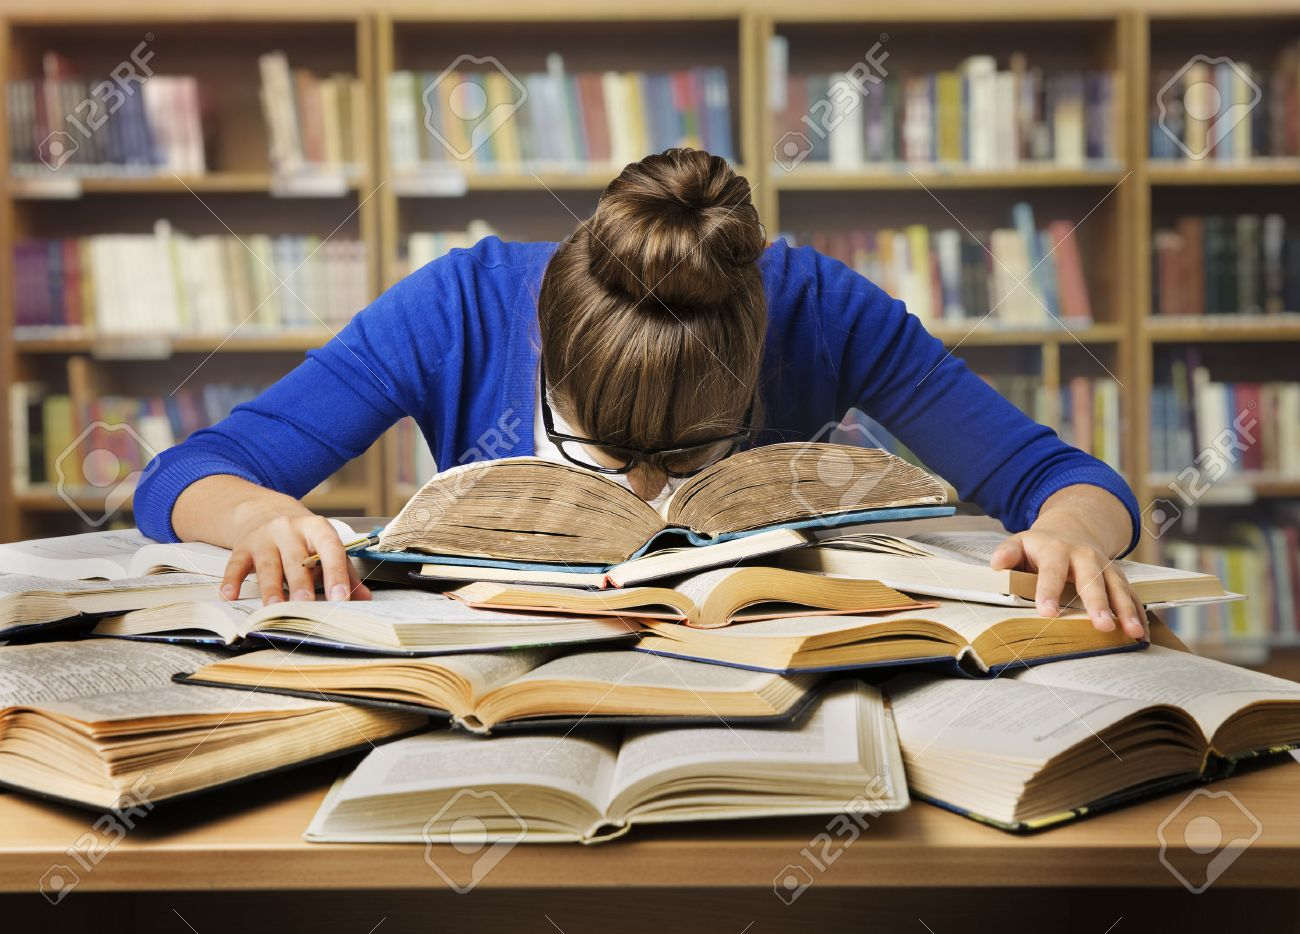 Student Studying Hard Exam and Sleeping on Books, Tired Girl Read Difficult Book in Library - 55589706